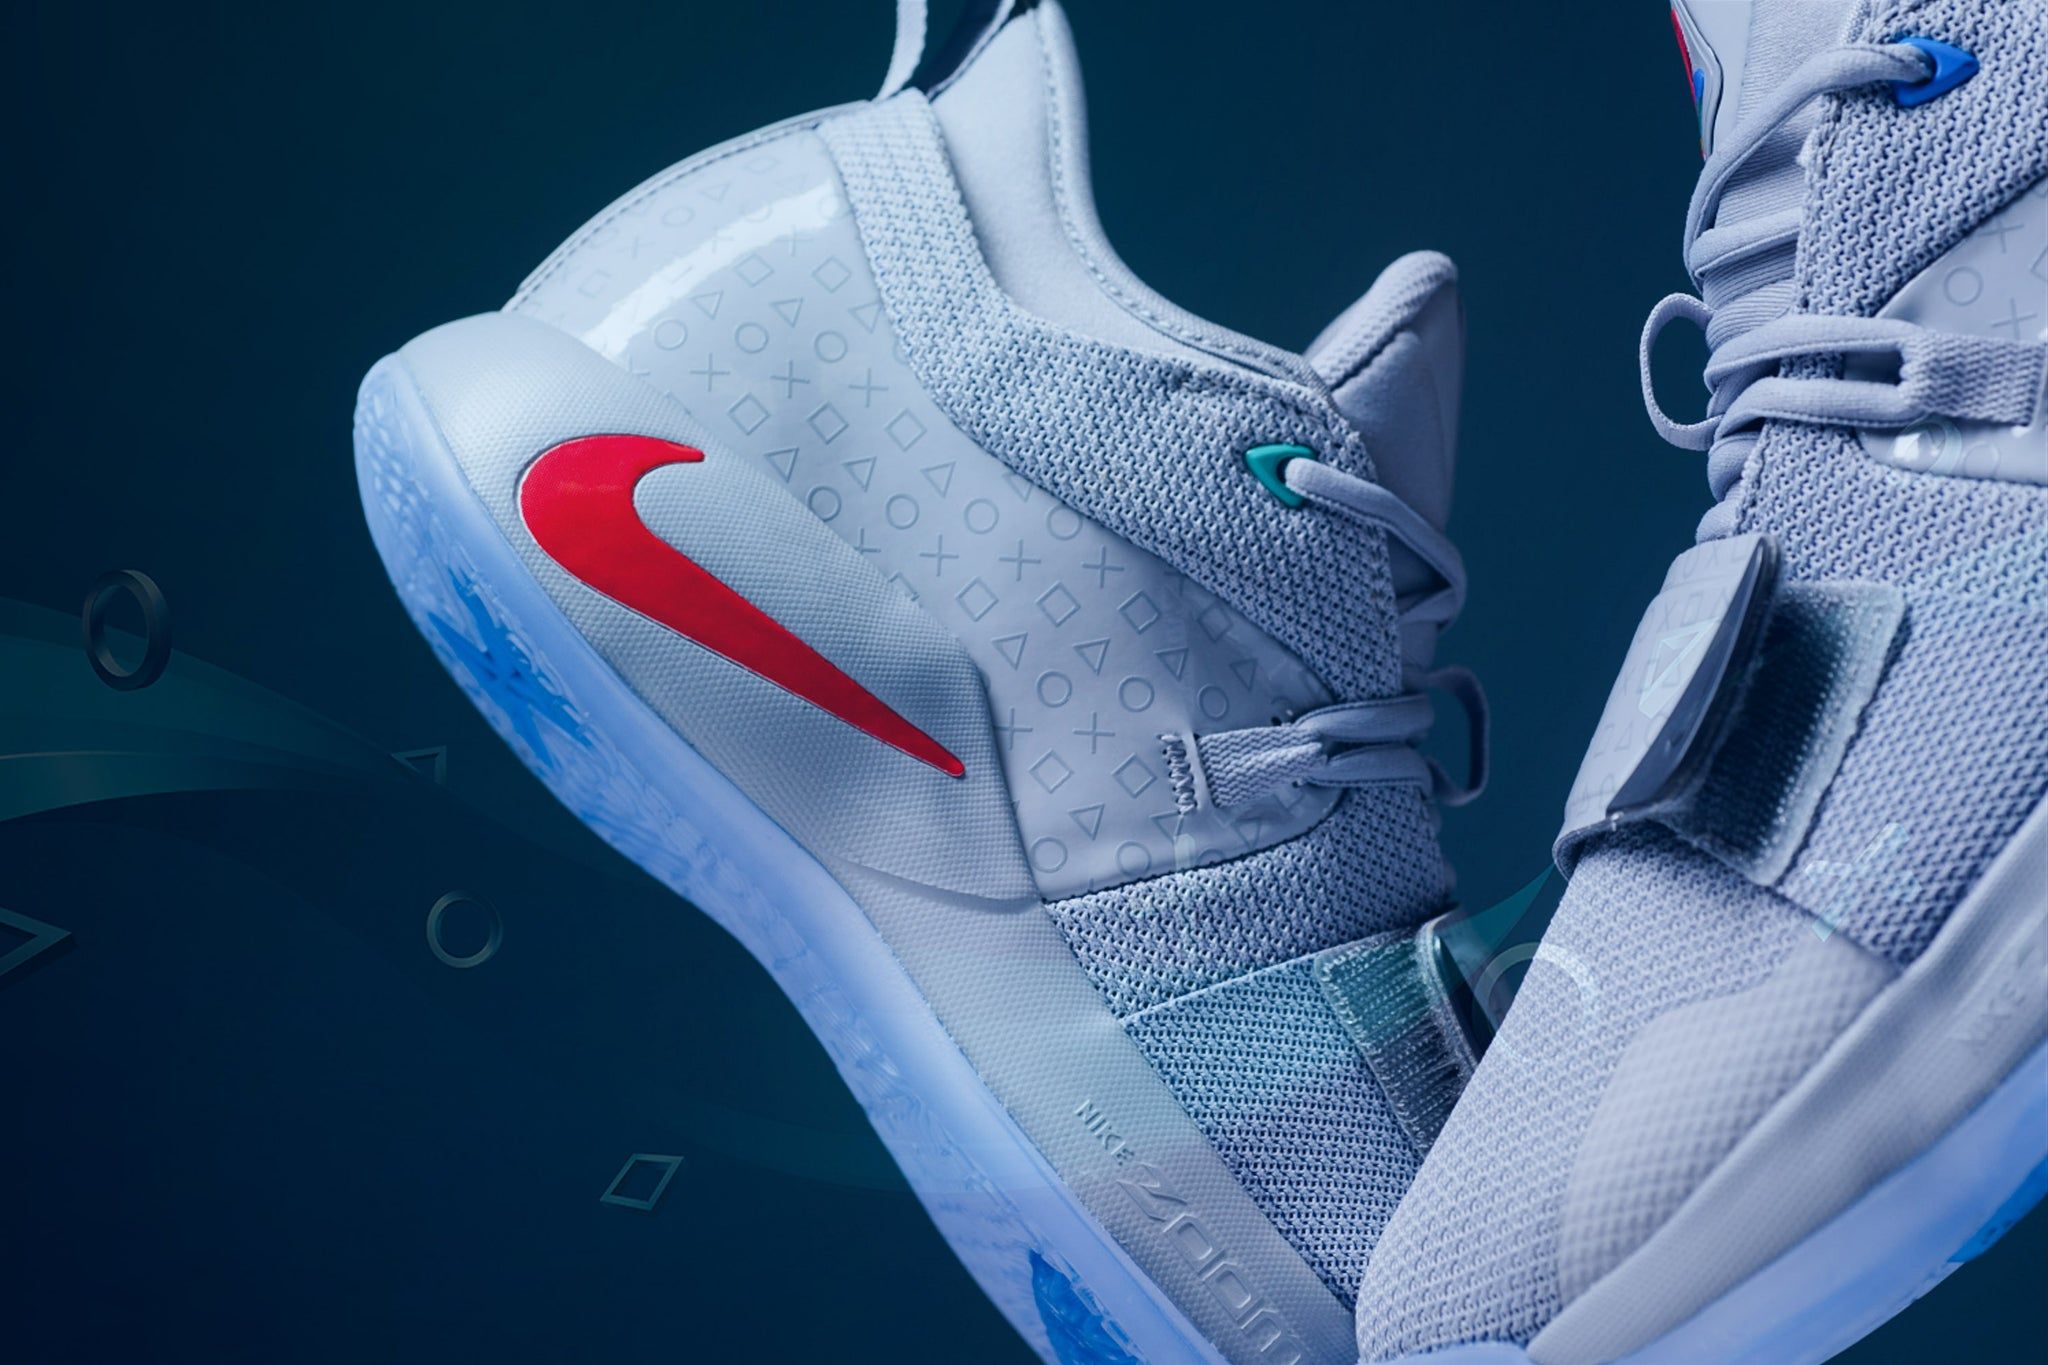 low priced bbd95 371f1 Nike PG 2.5 x PLAYSTATION - Sneaker Politics